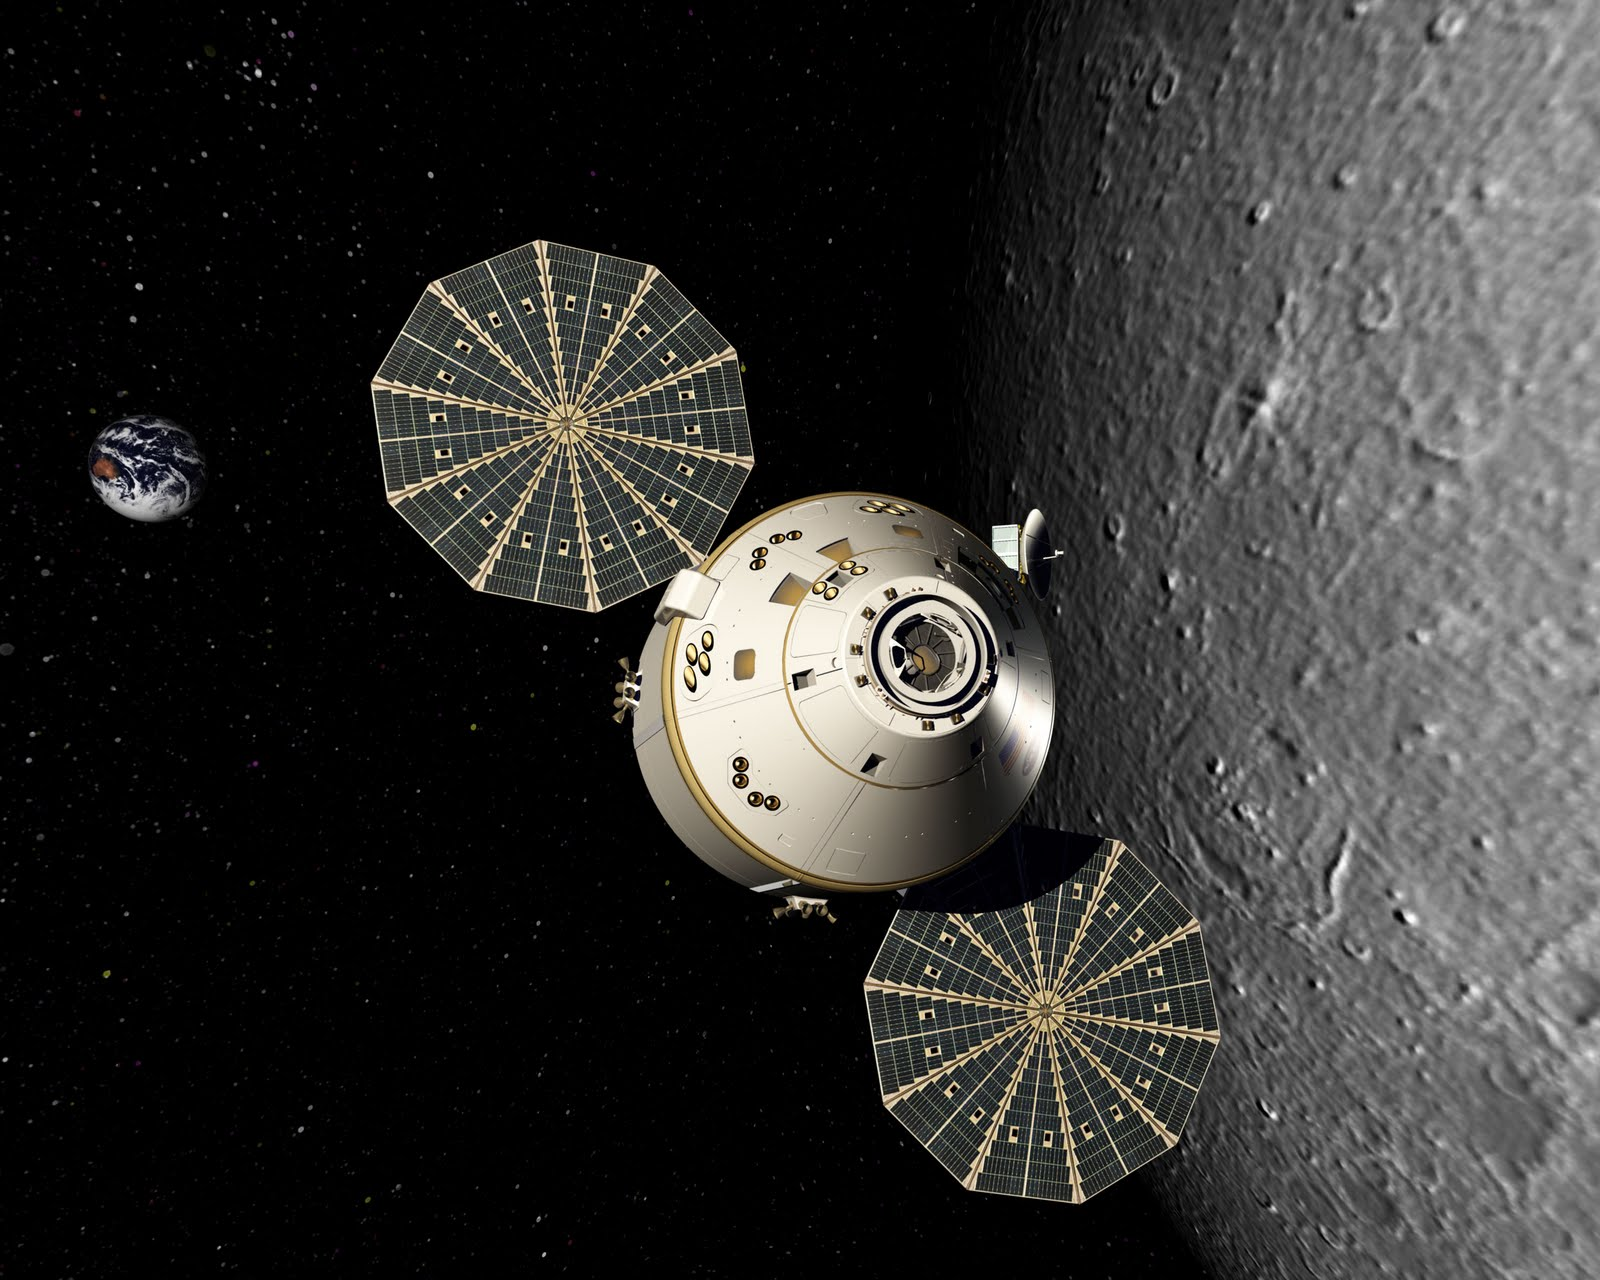 orion spacecraft - photo #10